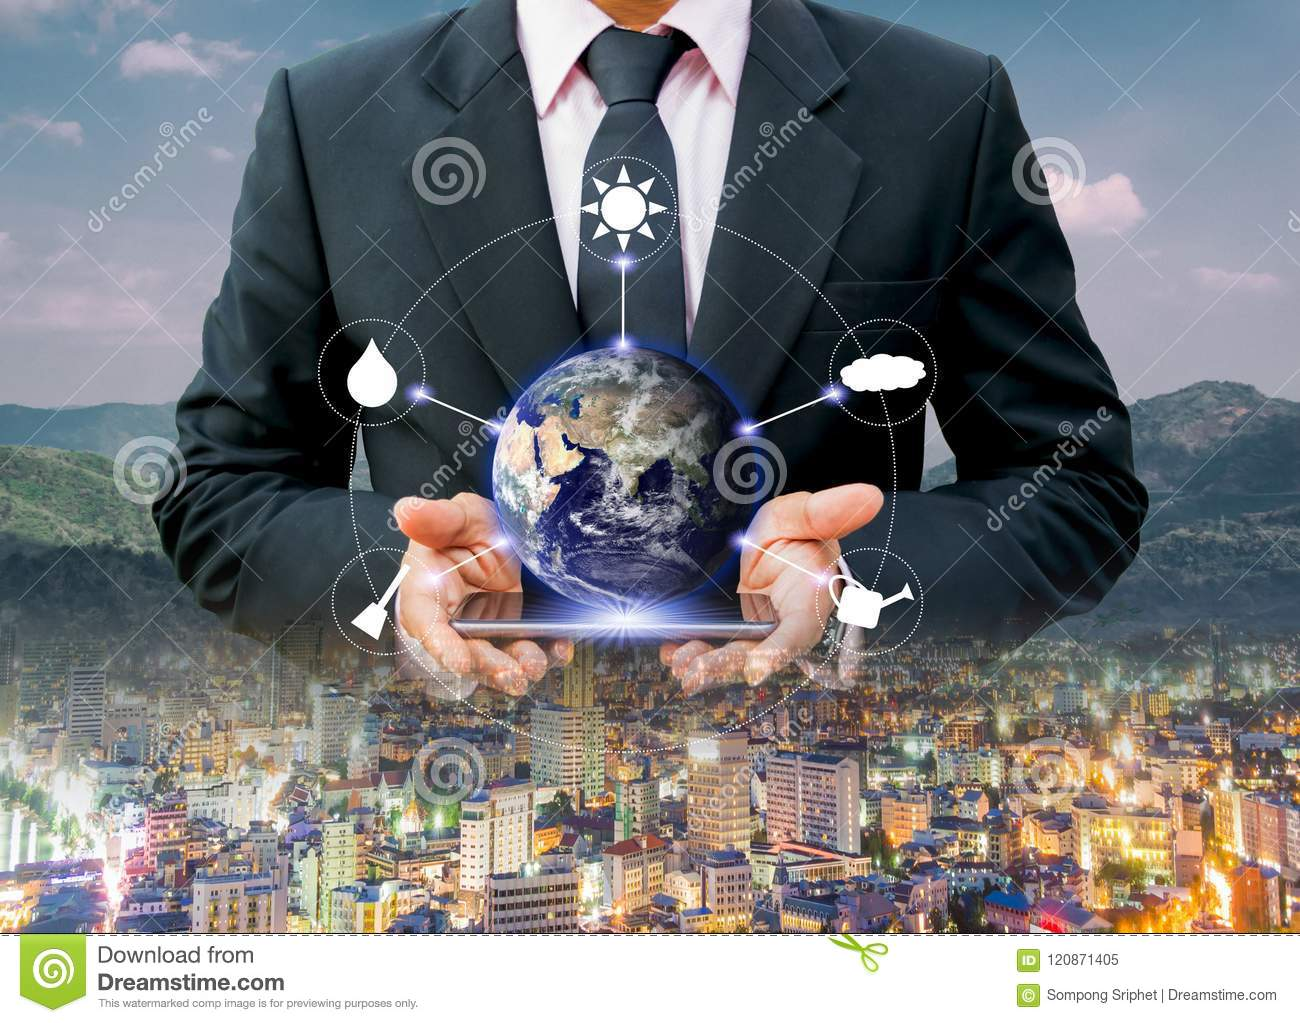 Environment for the world Urban environmental protection and technology,Elements of this image furnished by NASA